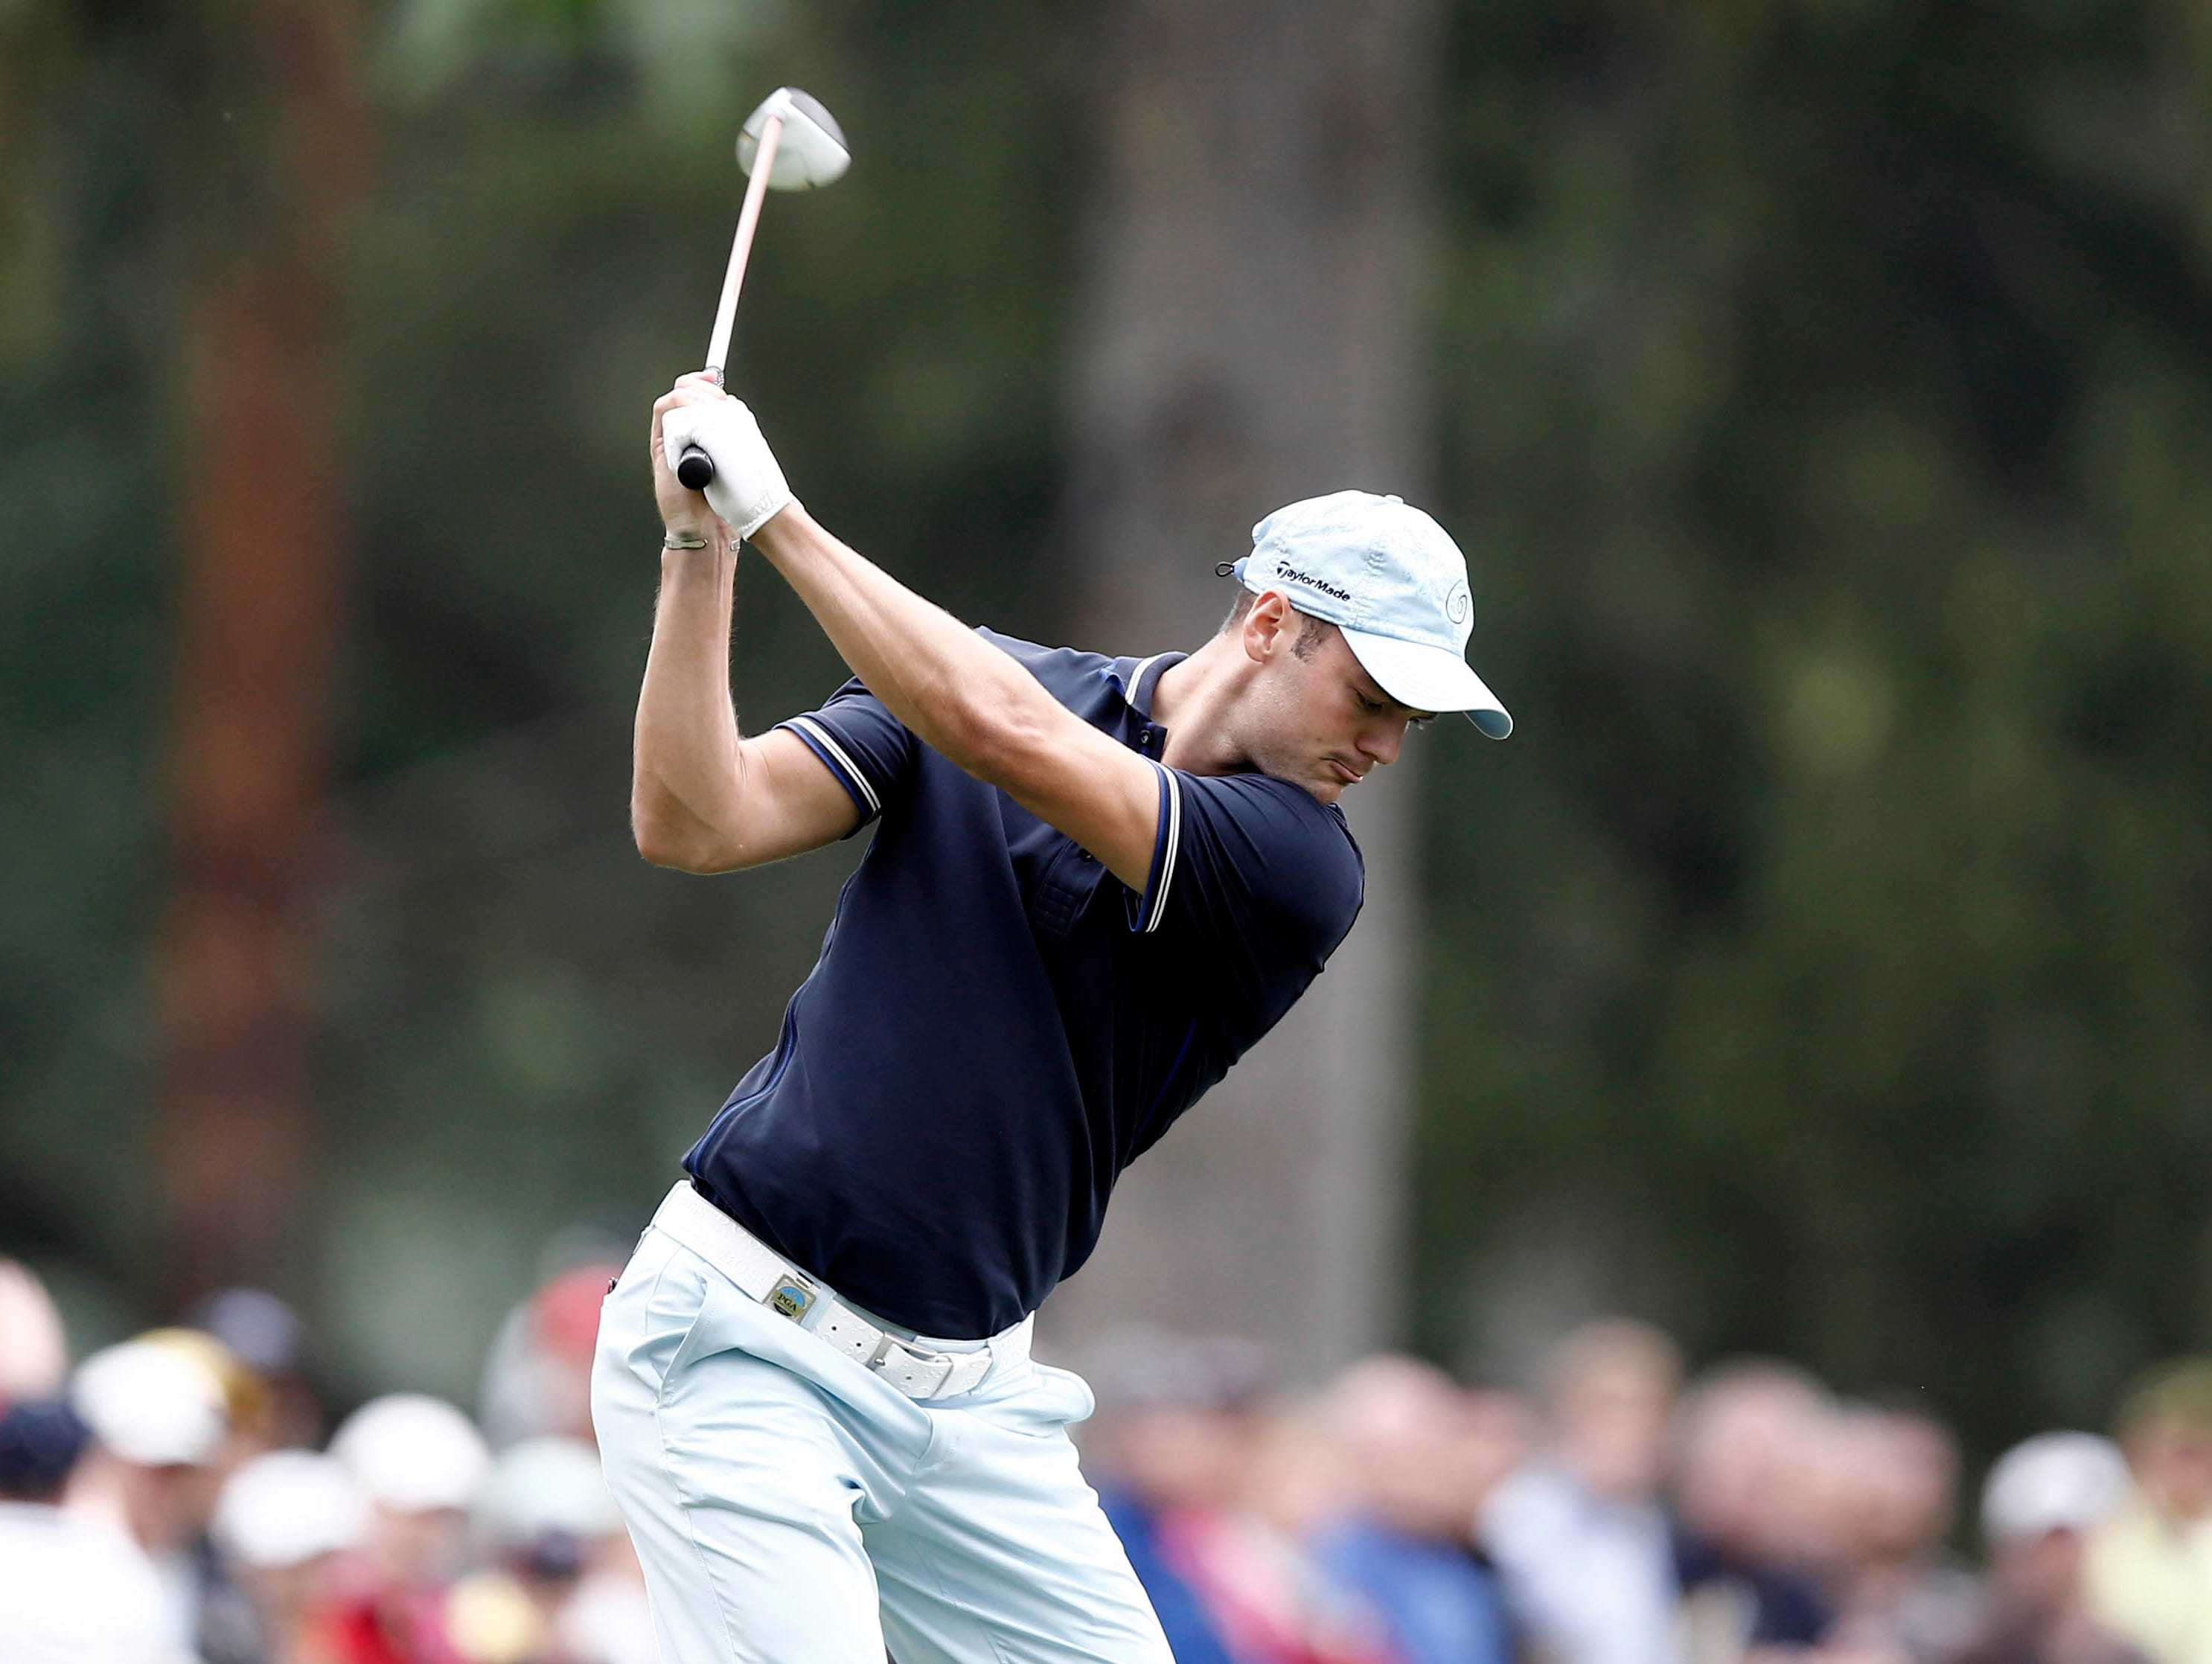 Martin Kaymer tees off on the 7th hole. Kaymer  shot a 2-under 68 and is at 4 under.